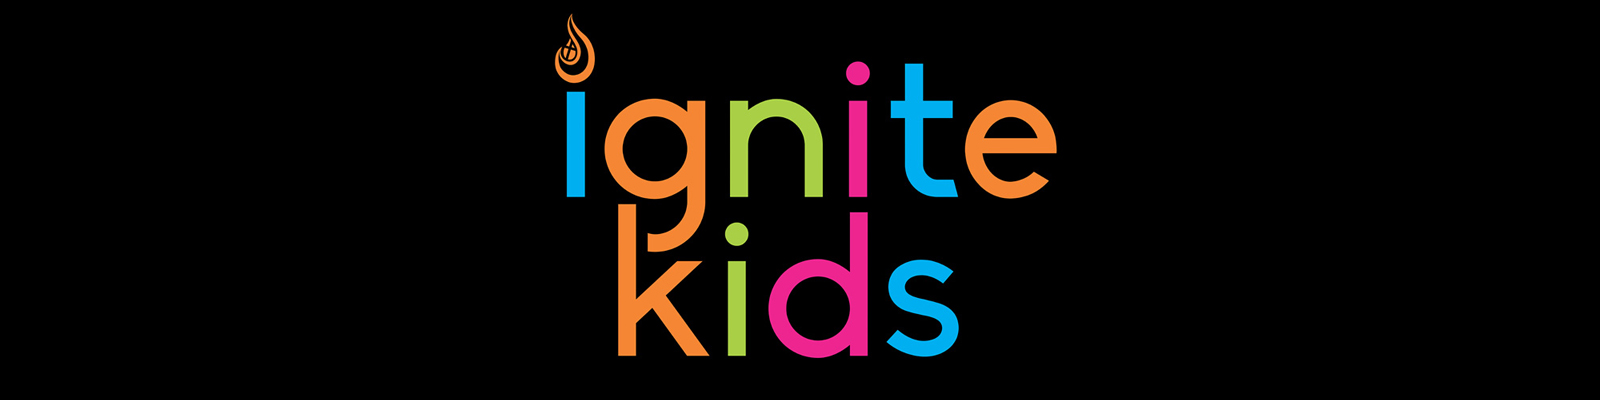 Ignite Kids